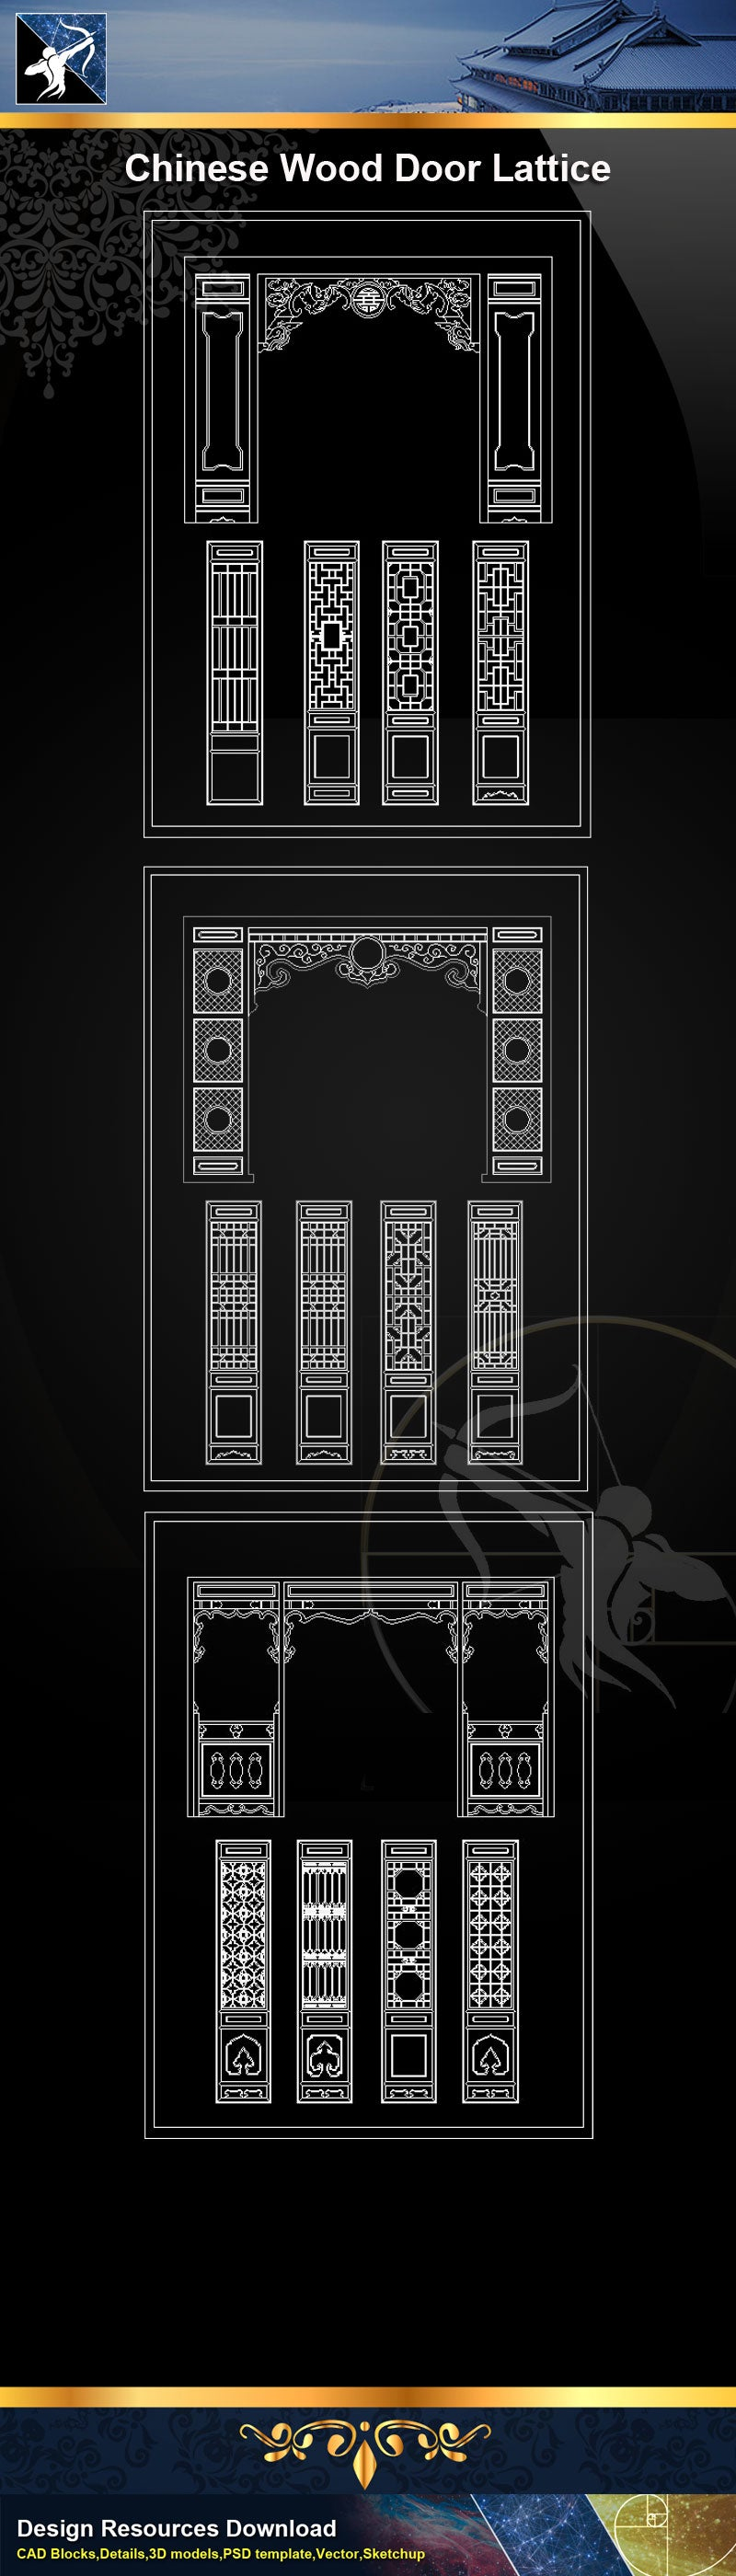 Antique Chinese DoorChinese Wood ScreenCarved Wood DoorCarved Wooden Chinese Door & Chinese Door Lattice CAD Blocks? u2013 ?Architecture CAD Drawings ...